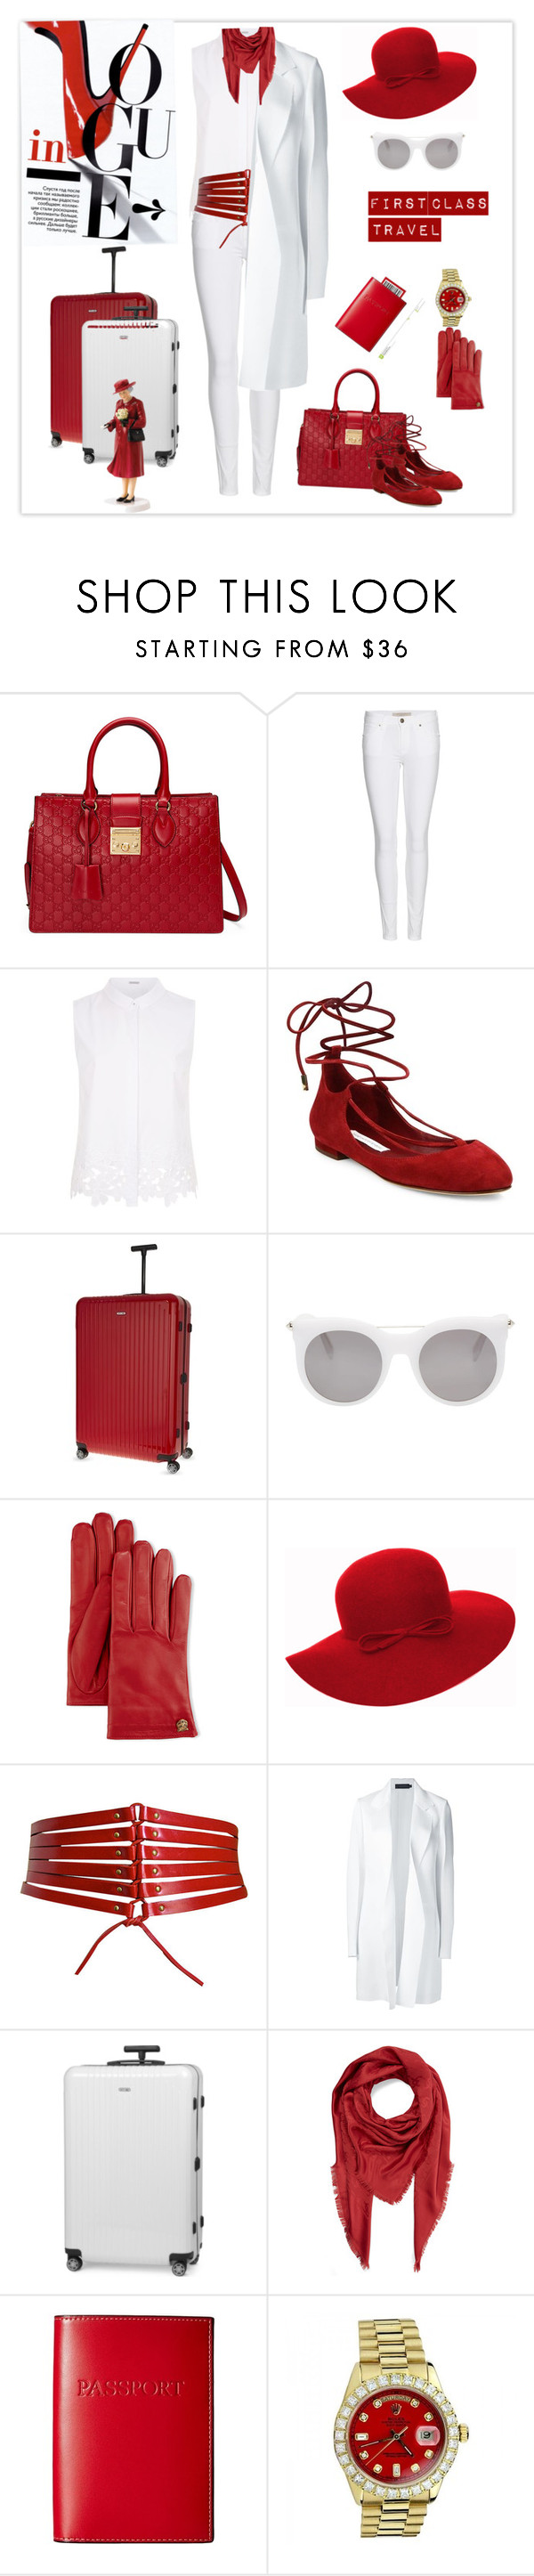 """First Class Travel"" by weirnixie ❤ liked on Polyvore featuring Gucci, Burberry, Elie Tahari, Diane Von Furstenberg, Rimowa, Alexander McQueen, Alaïa, Calvin Klein Collection, Marc Jacobs and Lodis"